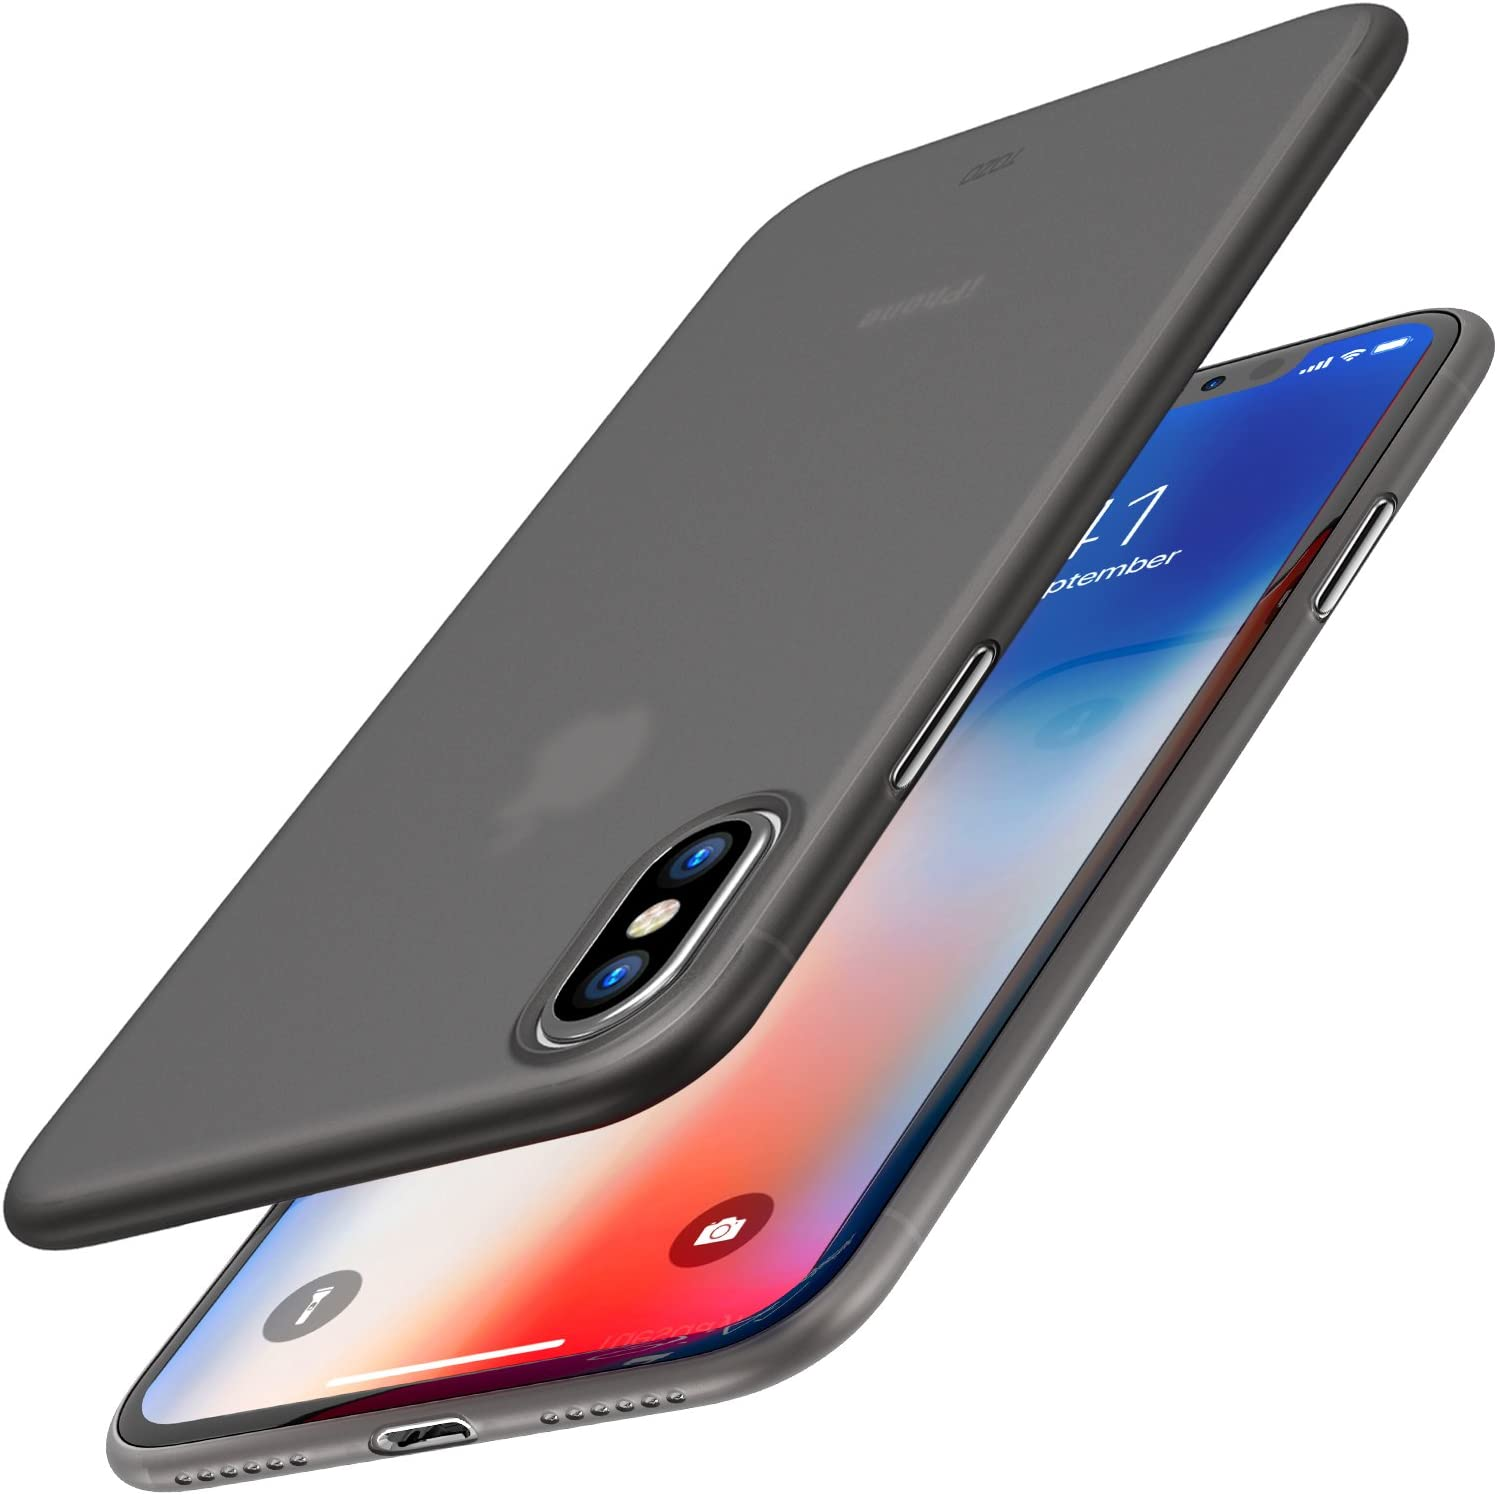 TOZO for iPhone X Case, Ultra Thin Hard Cover [0.35mm] World's Thinnest Protect Bumper Slim Fit Shell iPhone 10/X [ Semi-Transparent ] Lightweight [Matte Black]